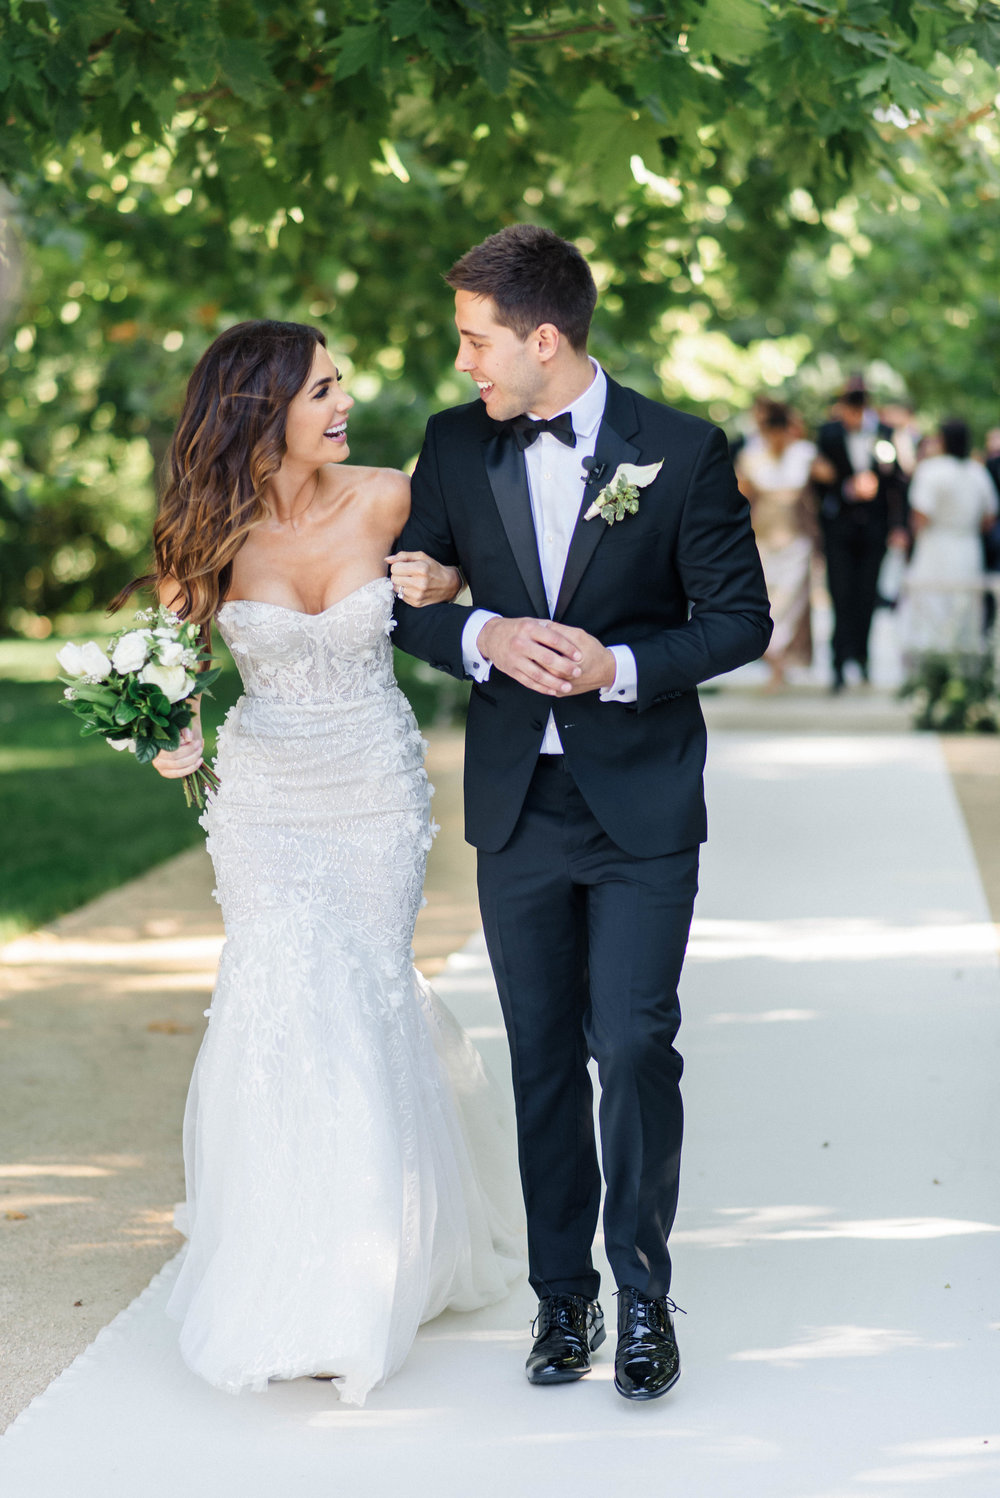 JillianMurray_Deangeyer_Wedding_Jana_Williams_Photography-8405.jpg